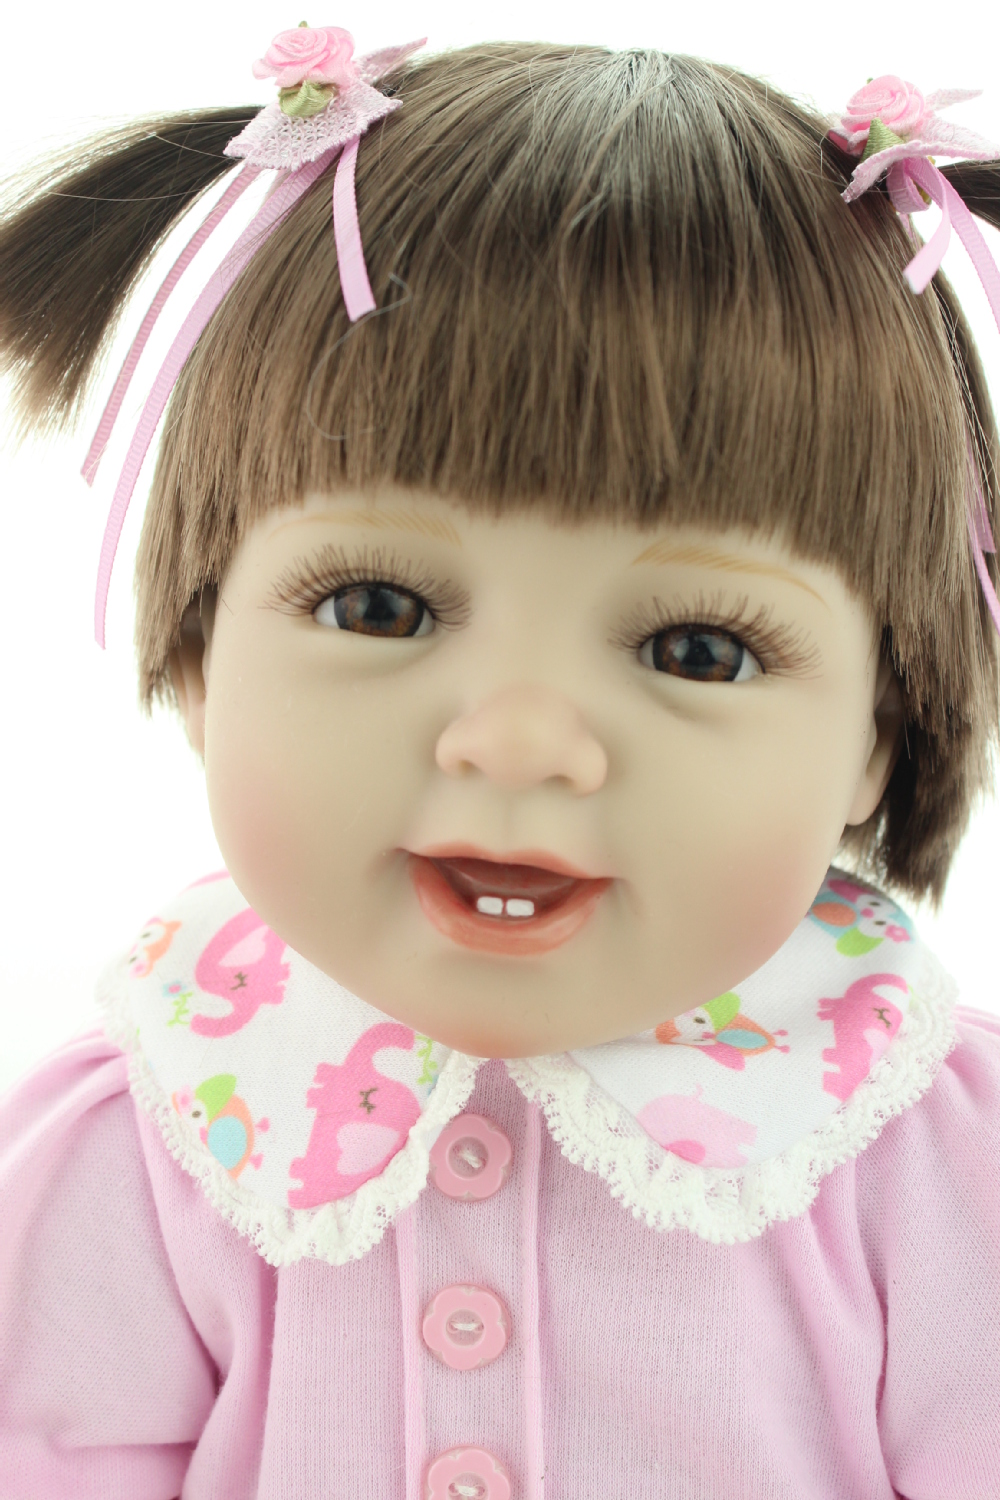 NPKCOLLECTION 2015 NEW hot sale lifelike reborn baby doll with rooted human hair smile fashion doll Christmas gift lovely gifts new hot 17cm avengers thor action figure toys collection christmas gift doll with box j h a c g